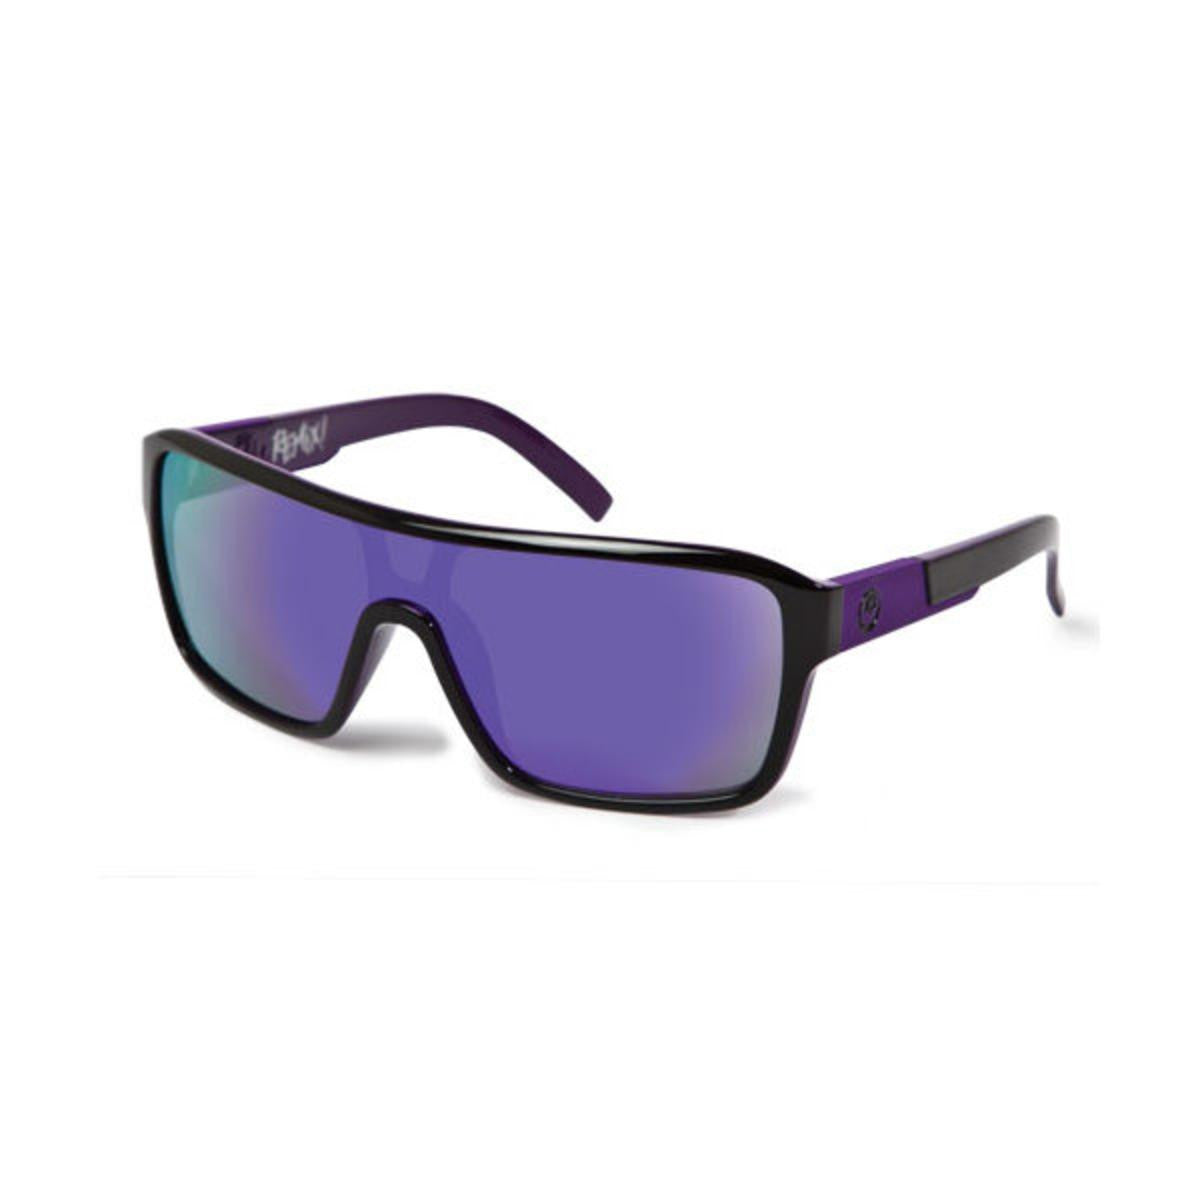 Dragon Remix Men's Sunglasses